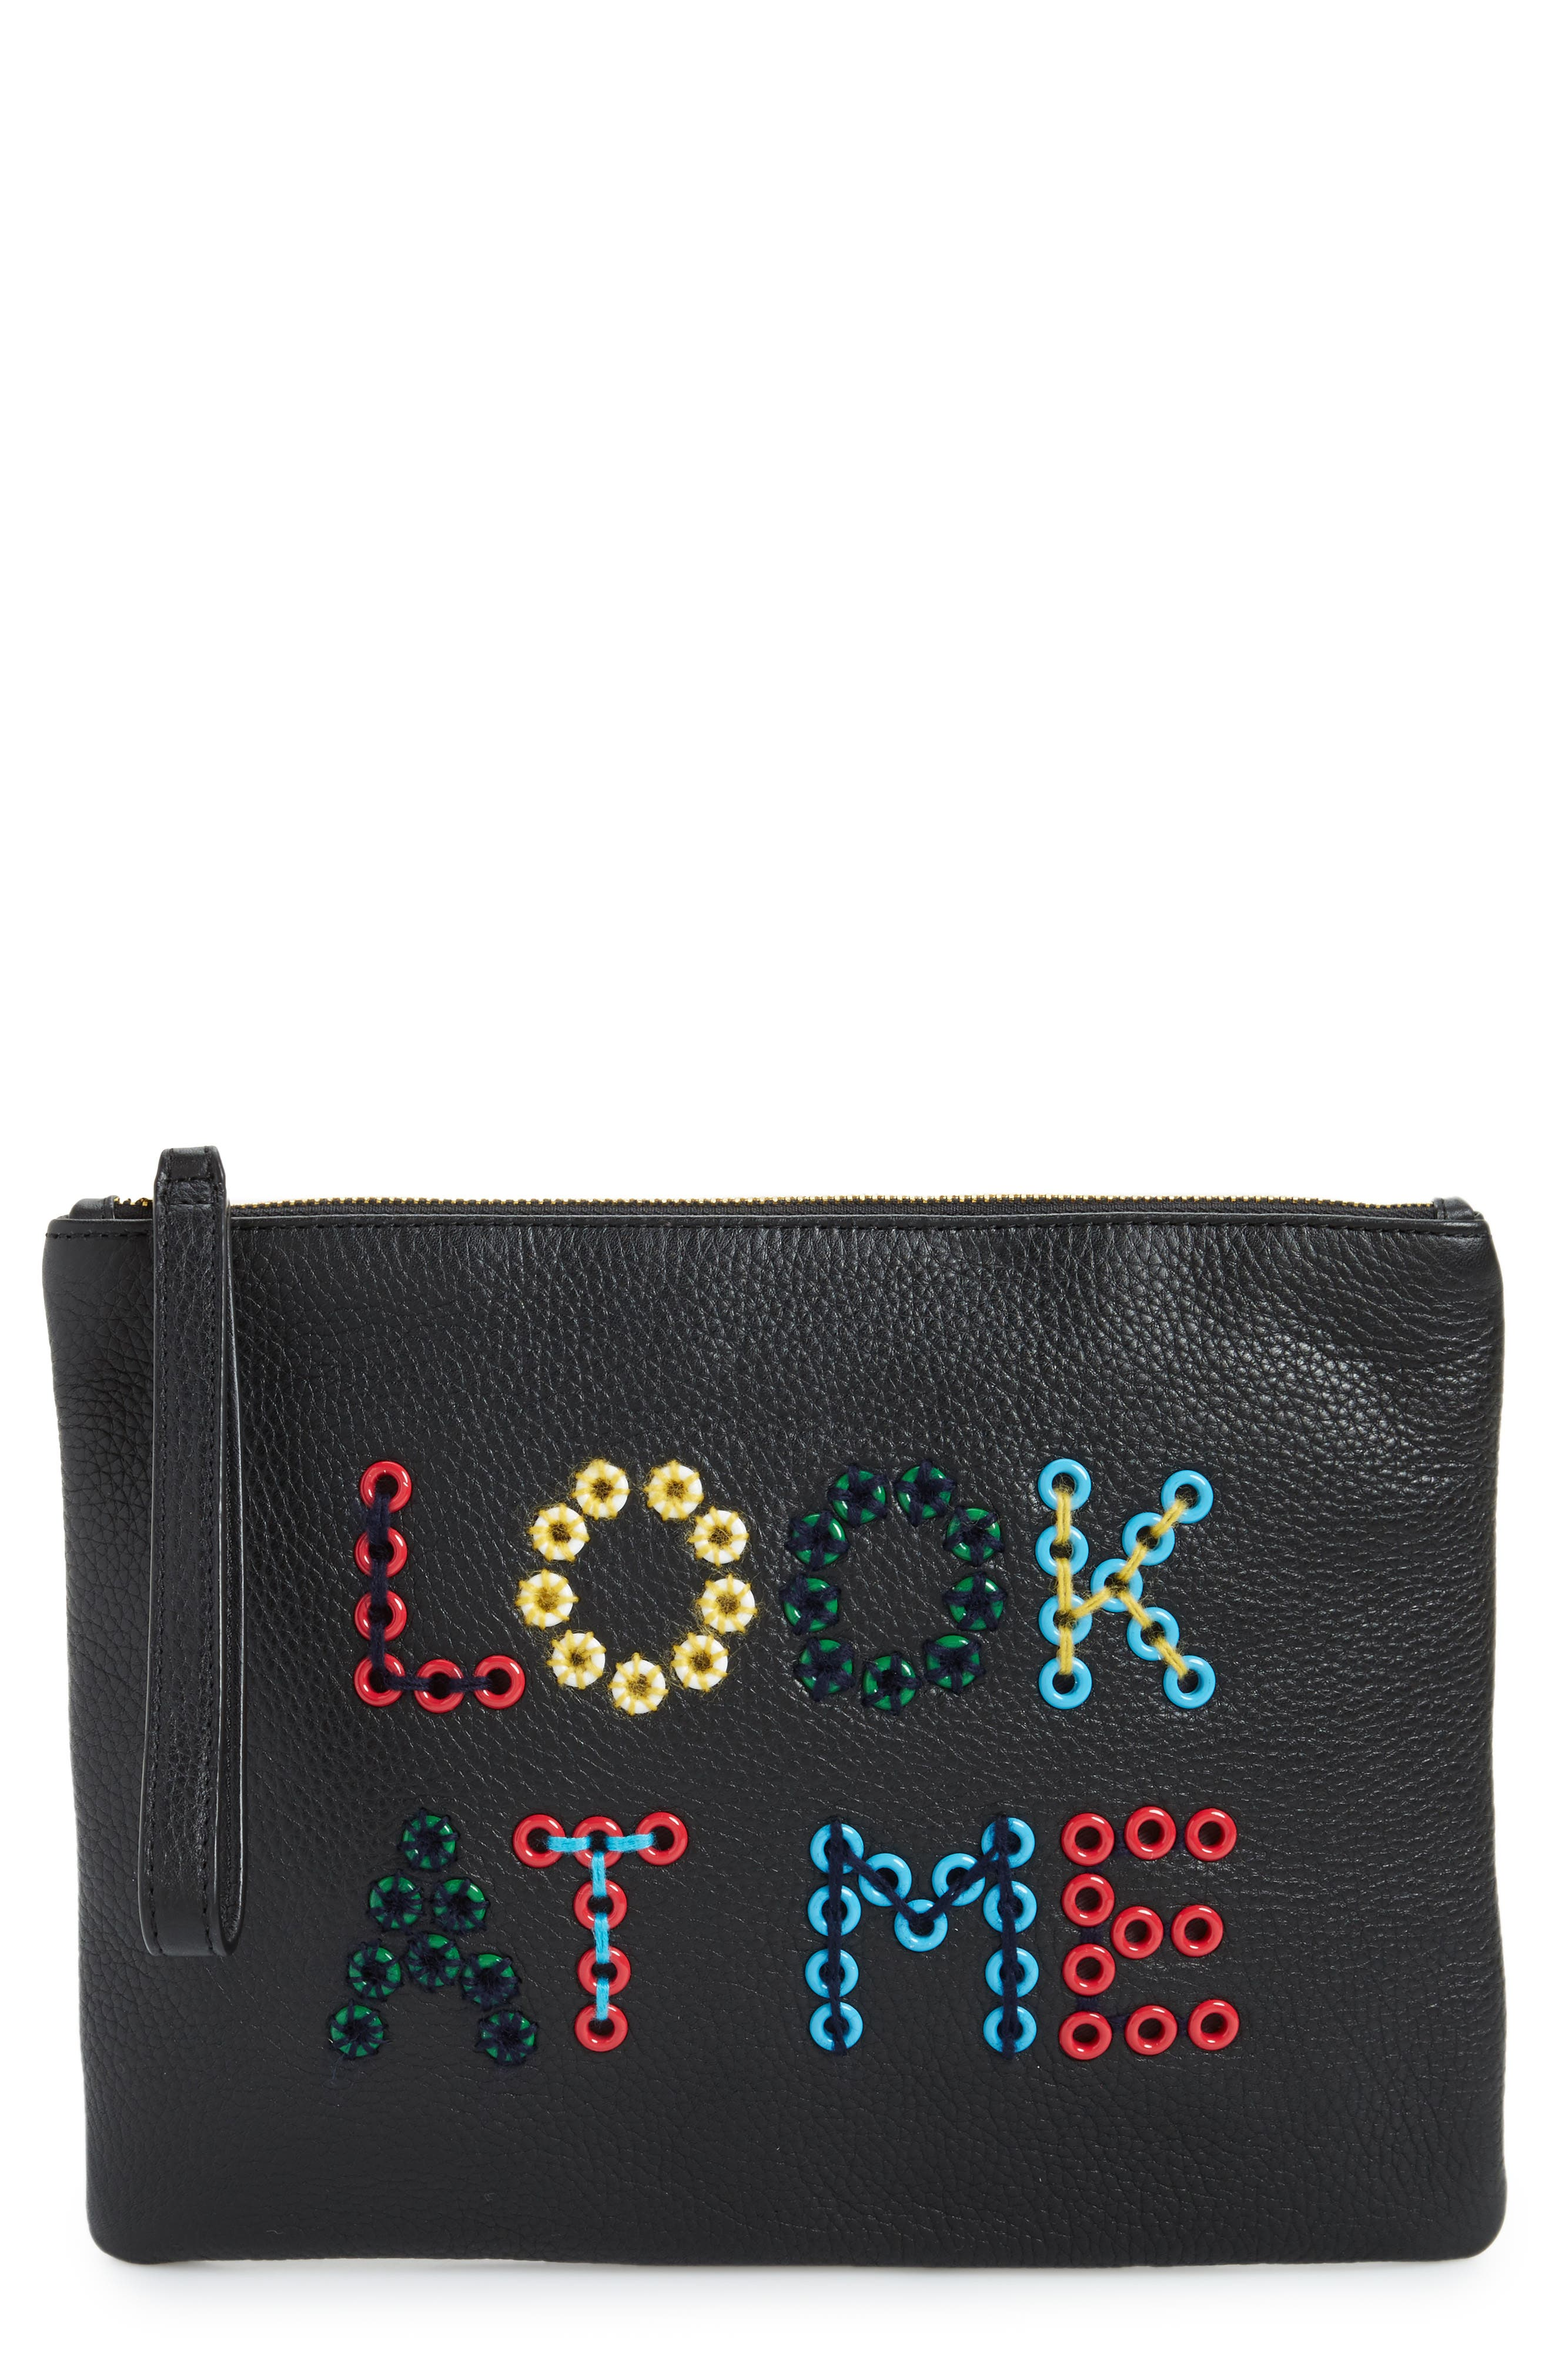 Sam Edelman Layton Look at Me Embellished Pouch